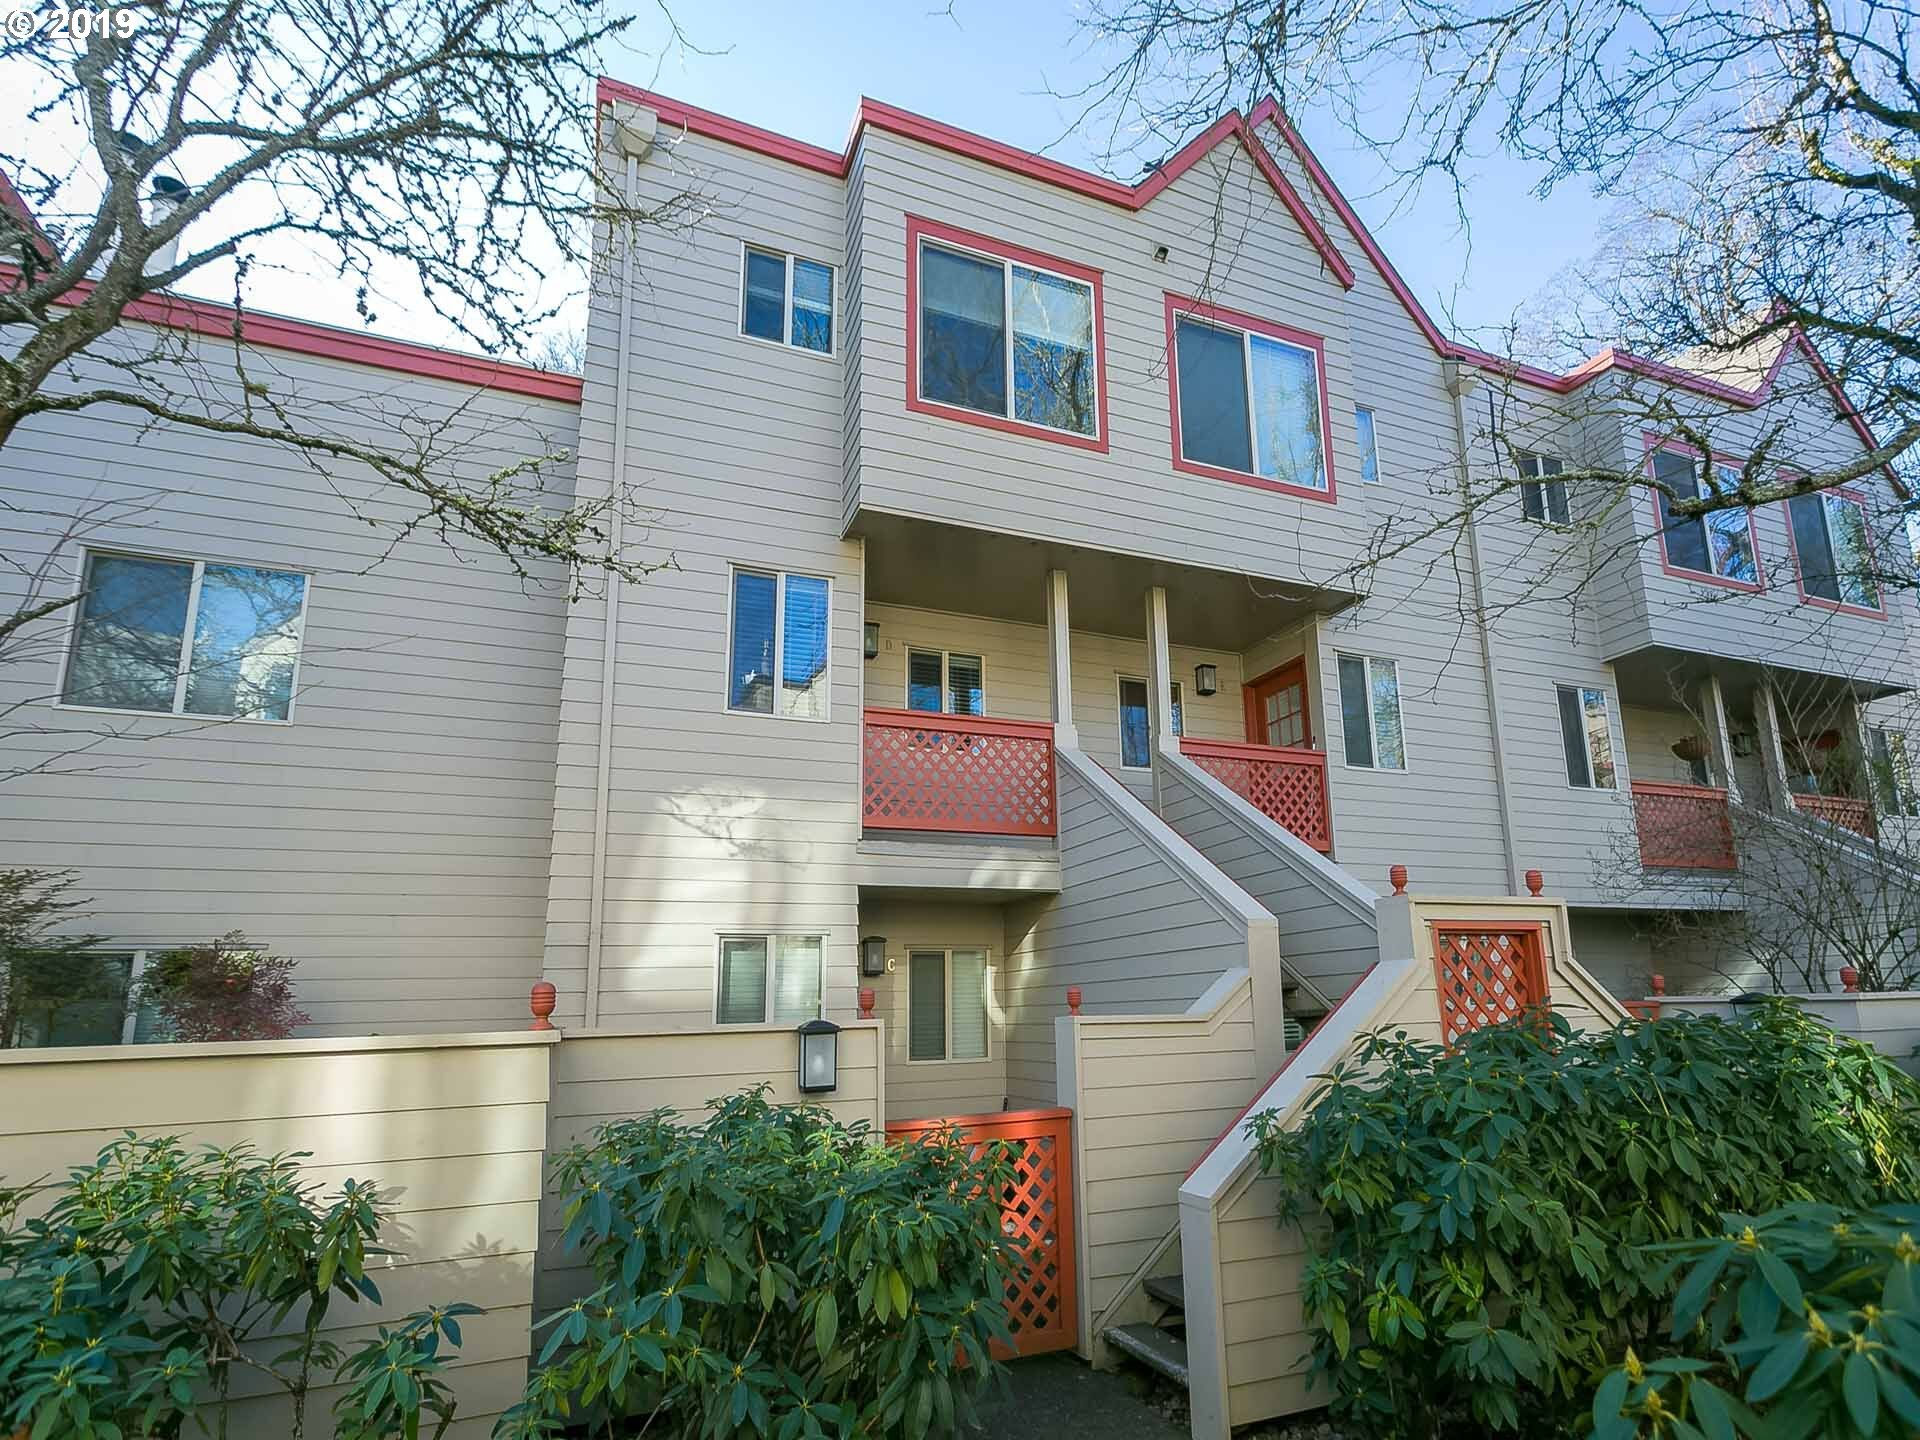 Photo of 2805 NW UPSHUR ST, D Portland OR 97210